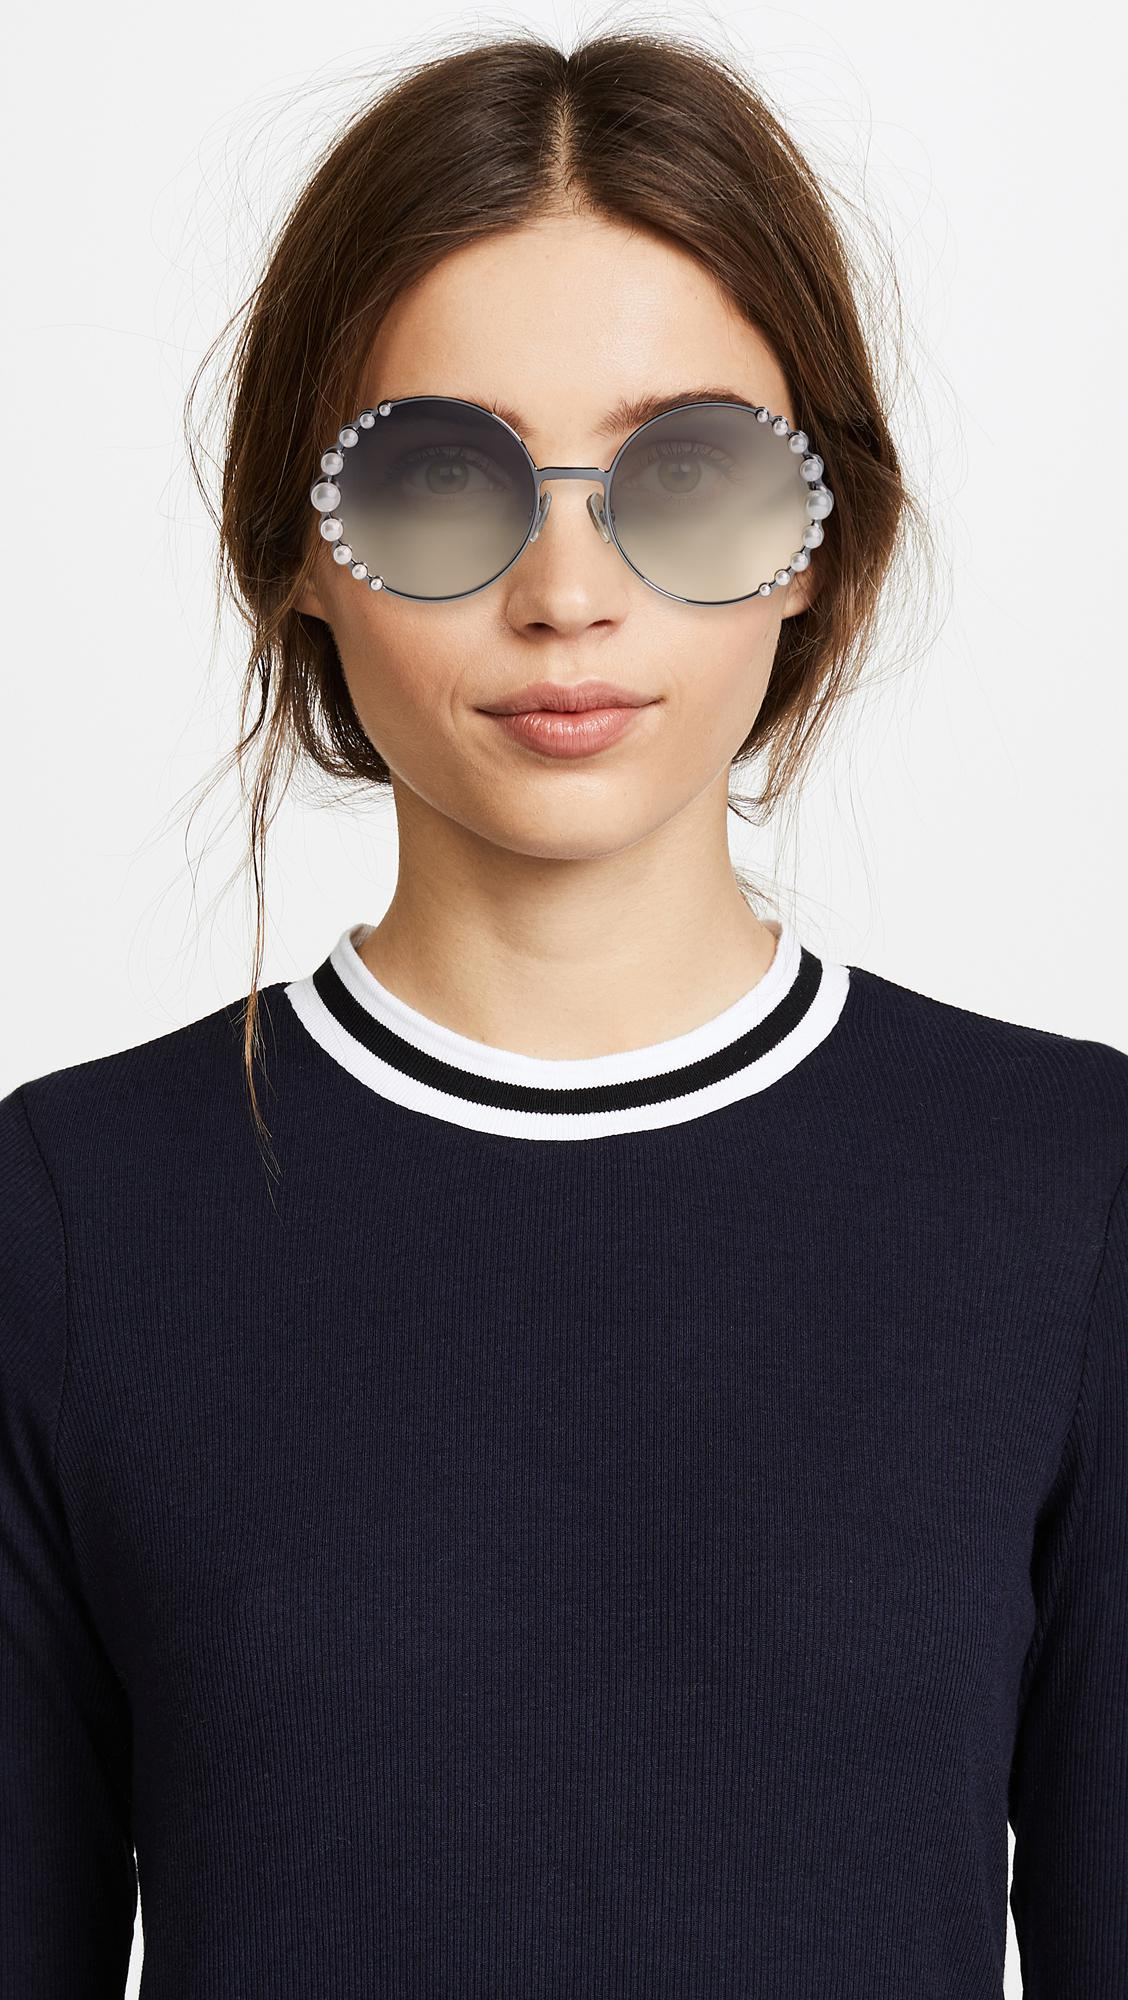 36c193a7 Women's Round Pearl Frame Sunglasses